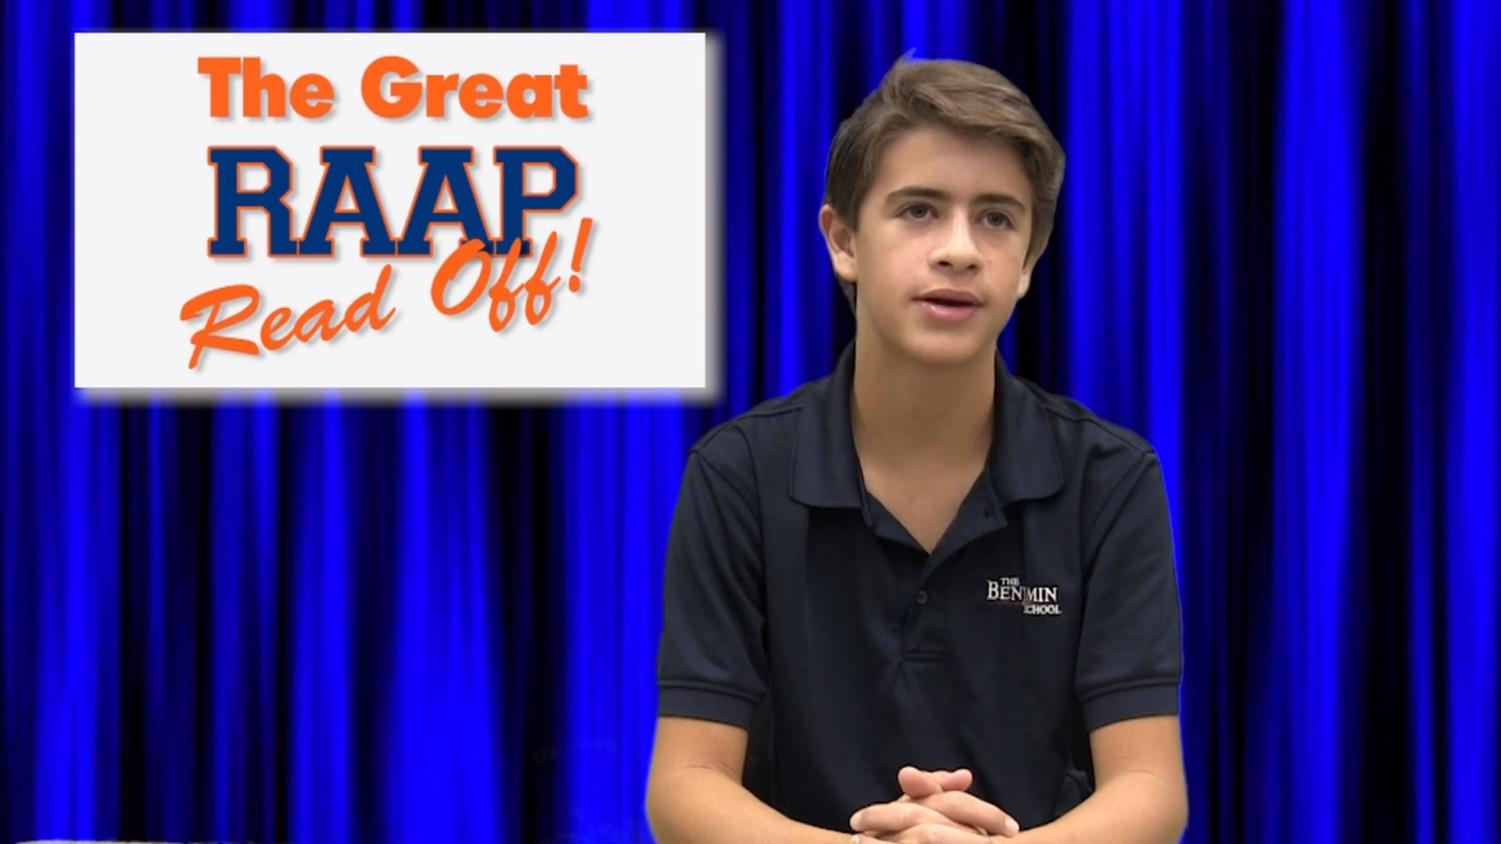 TBS News anchor Adam Braman explains the rules for this year's RAAP competition.